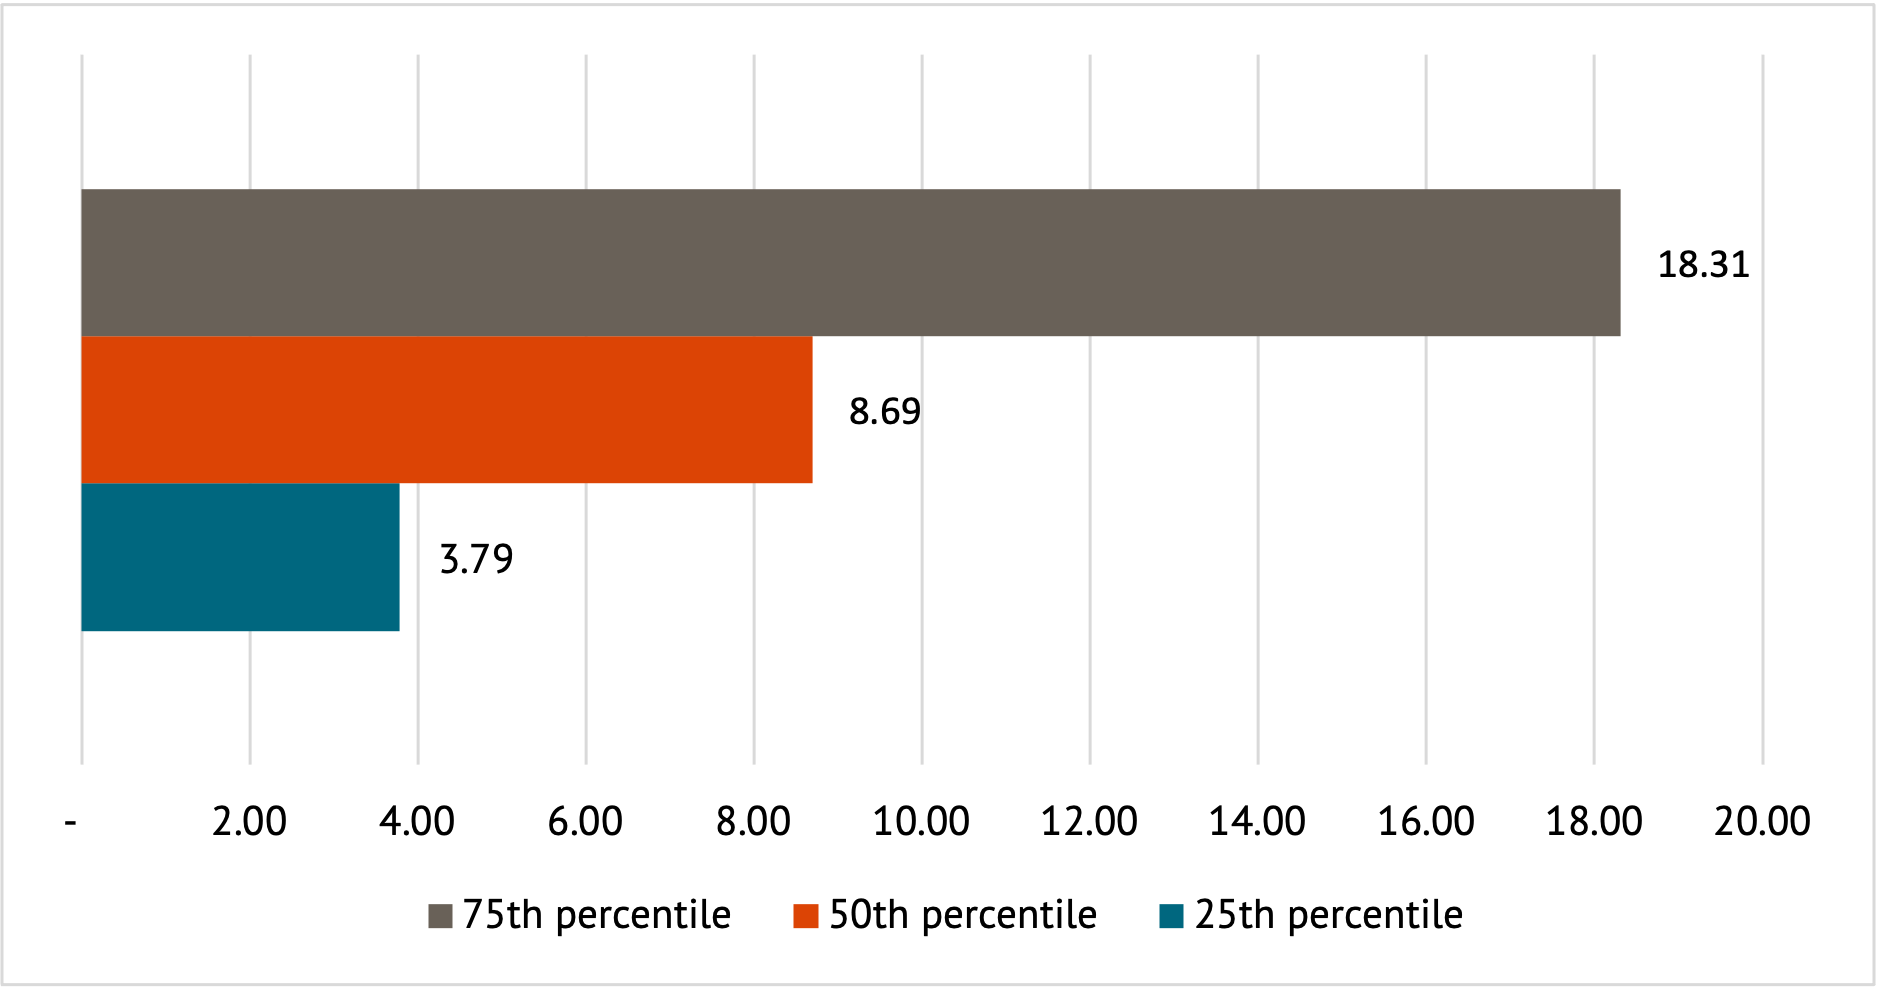 A figure showing the cost-effectiveness percentiles for CTF and GCF renewable energy projects weighted by fund financing ($ per tonne CO2 equivalent).